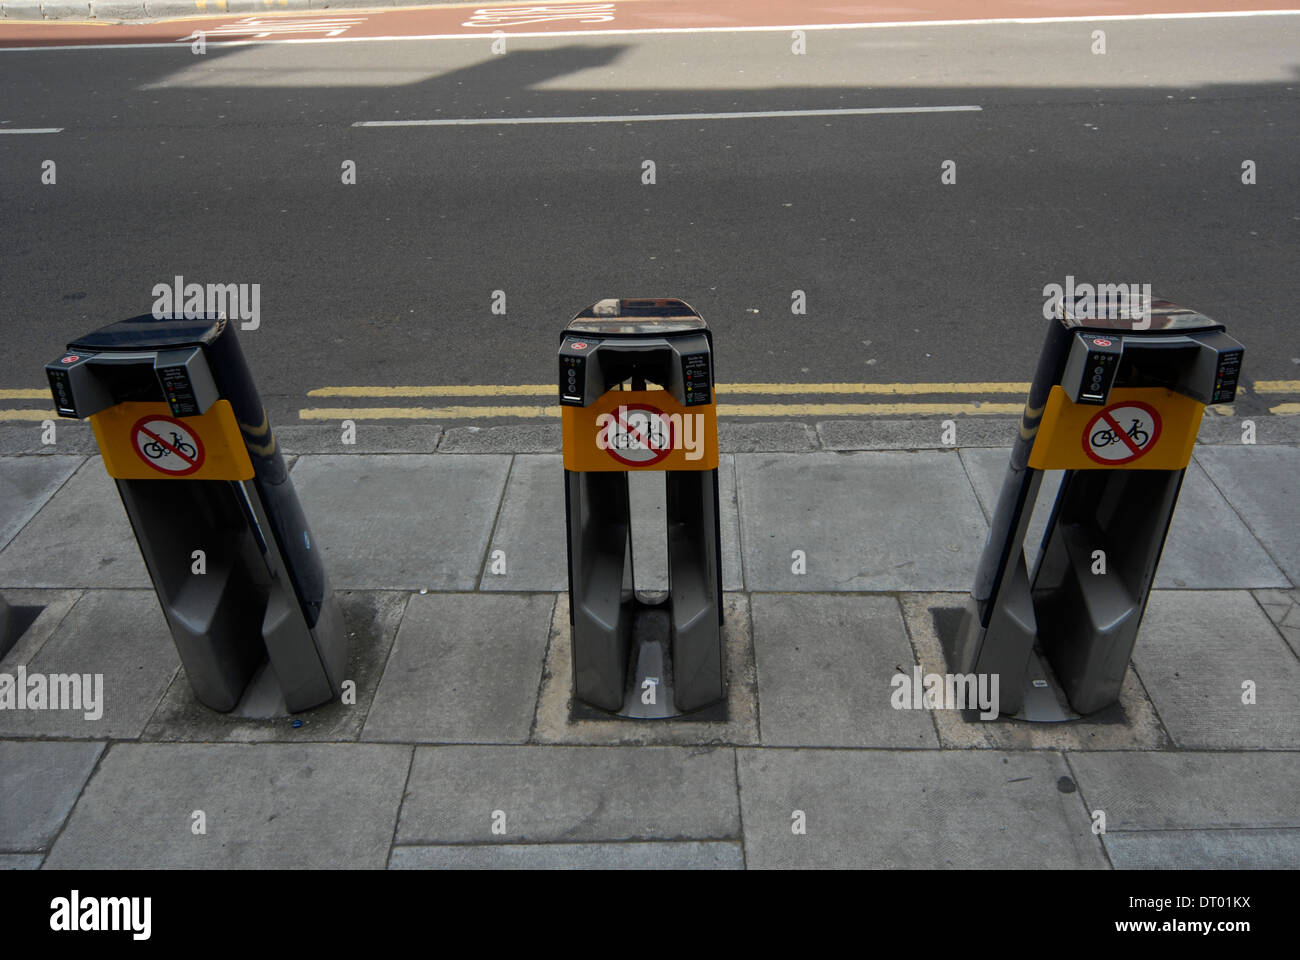 EMPTY BICYCLE  HIRE DOCKING STATION IN LONDON - Stock Image